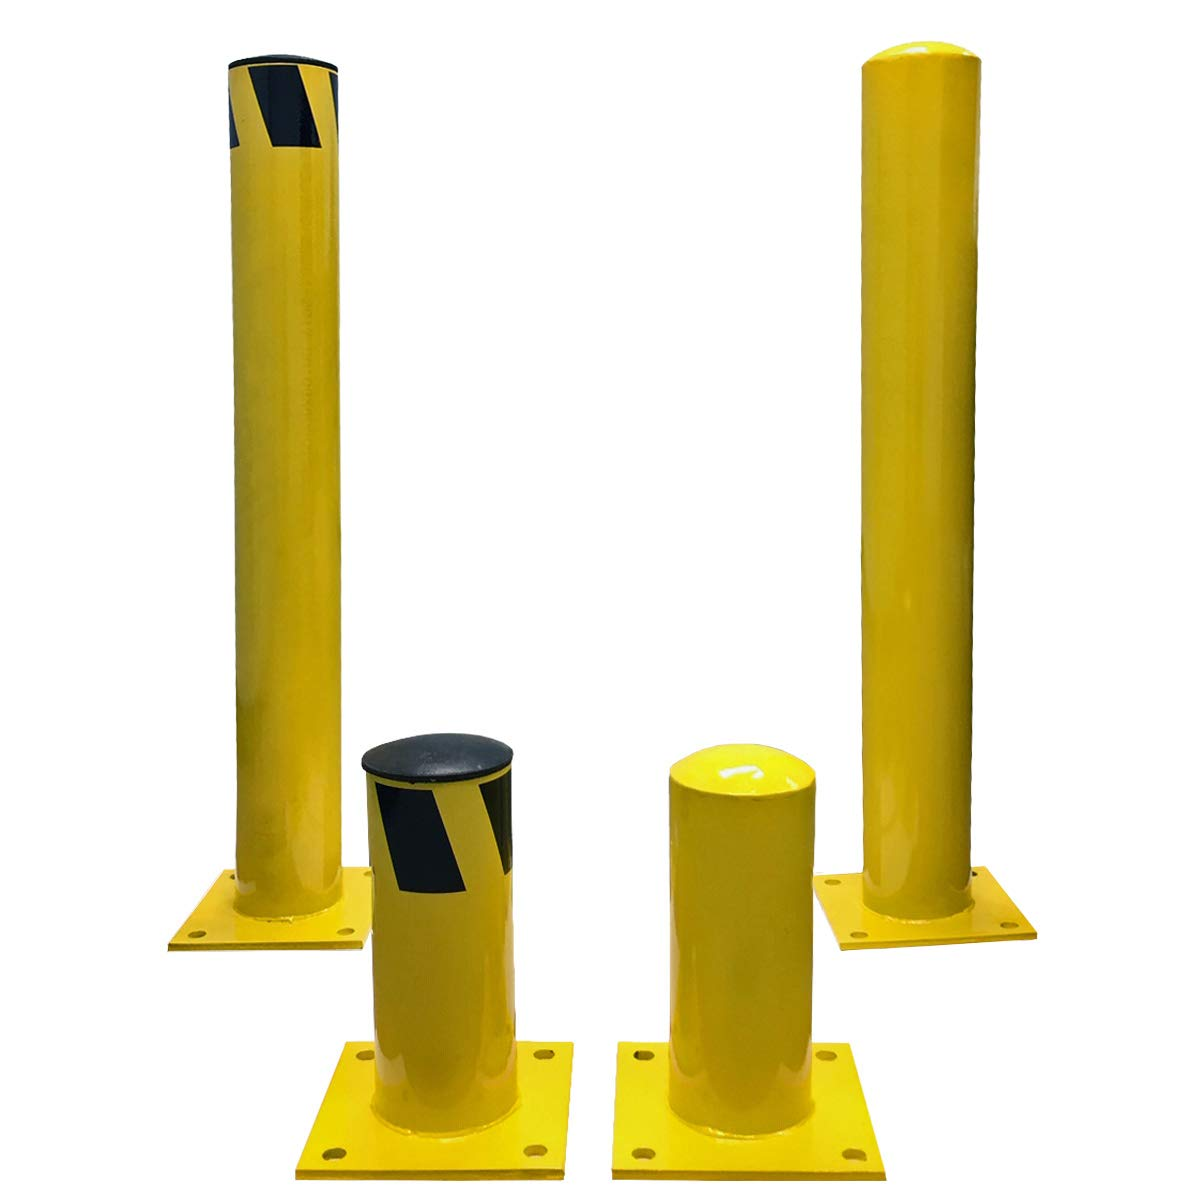 Electriduct 1 Foot Steel Pipe Safety Bollard Post Yellow/Black Stripe - Parking Lot Traffic Barrier (12'' Height - 4.5'' OD) - Pack of 4 by Electriduct (Image #4)